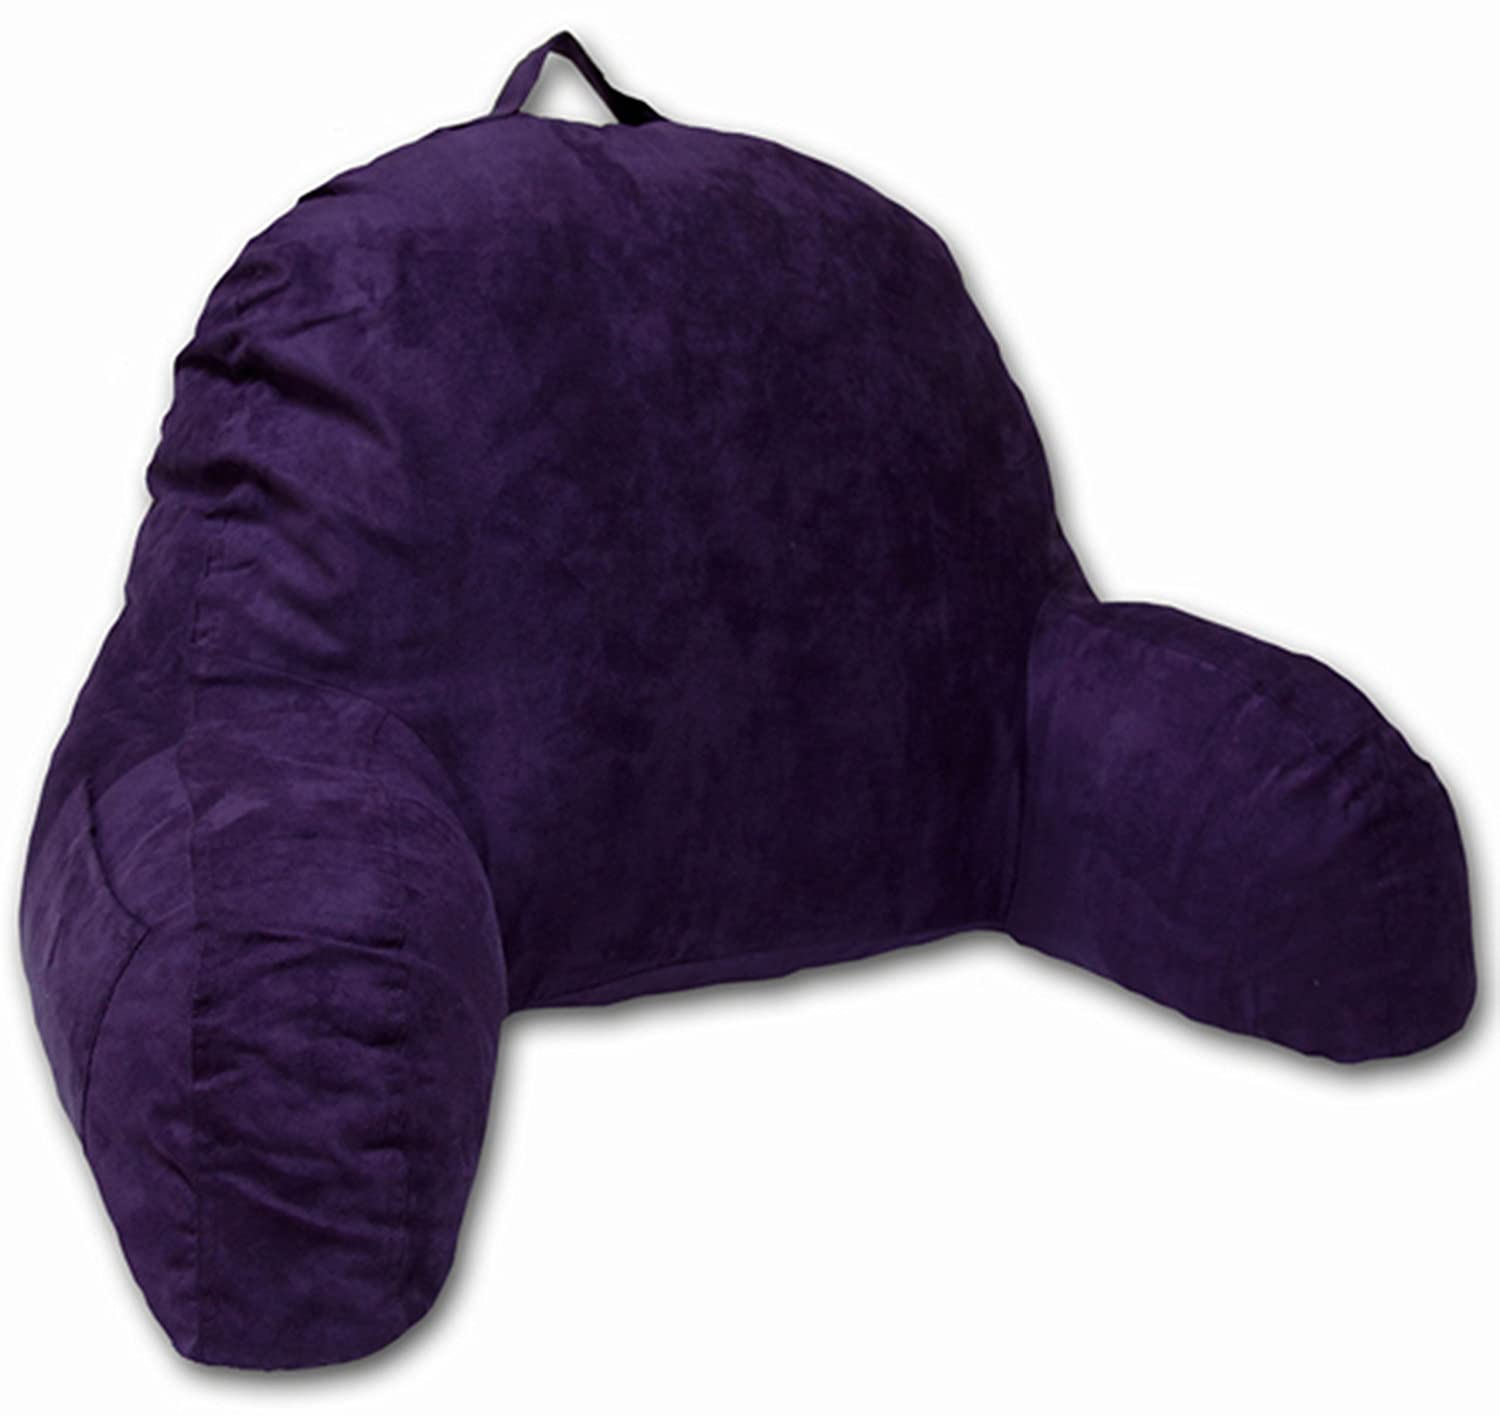 Bed pillow chair - Microsuede Bedrest Pillow Purple Best Bed Rest Pillows With Arms For Reading In Bed